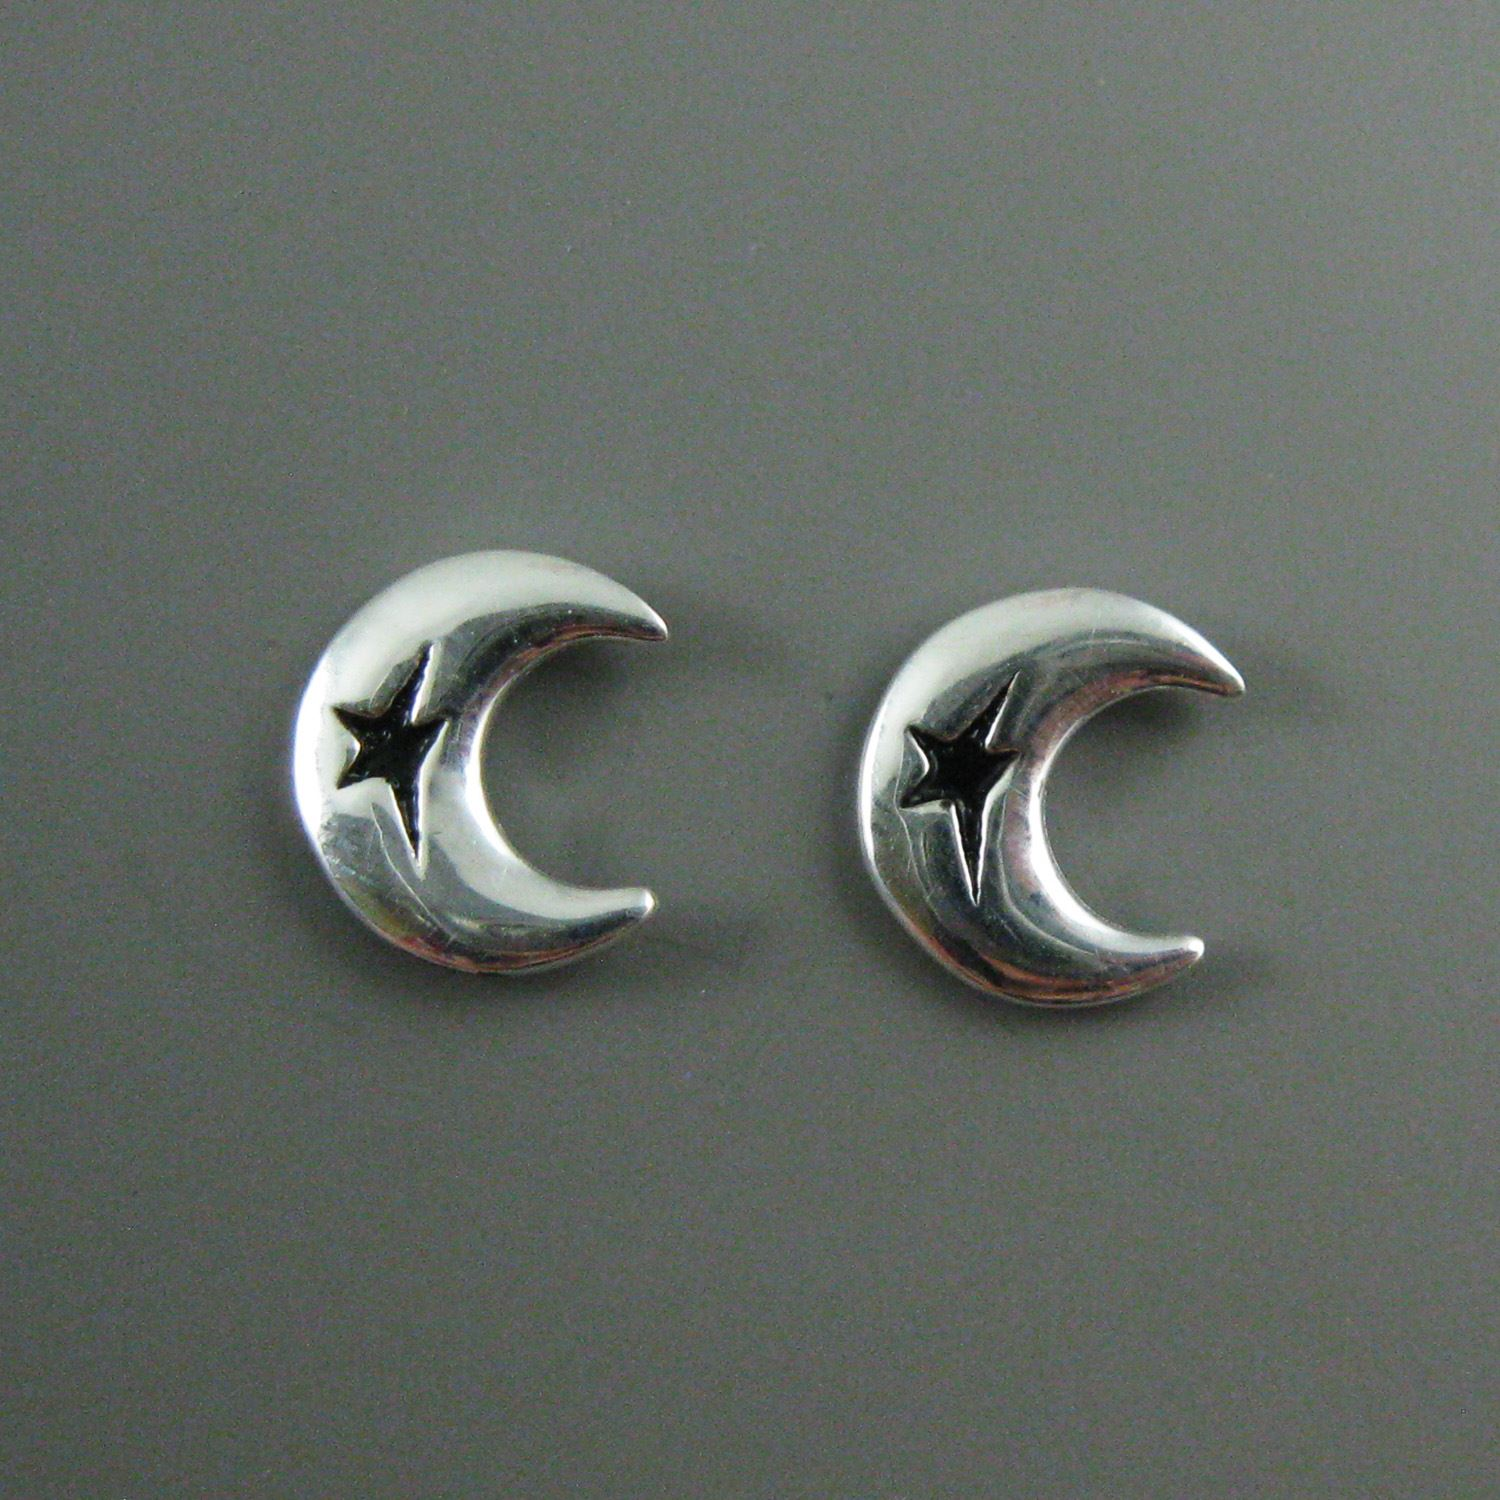 Sterling Silver Earrings, Crescent Moon Star Earrings, Silver Moon Earrings, Silver Arch Earwire, Earring Findings-11mm  (2 pcs, 1 pair)